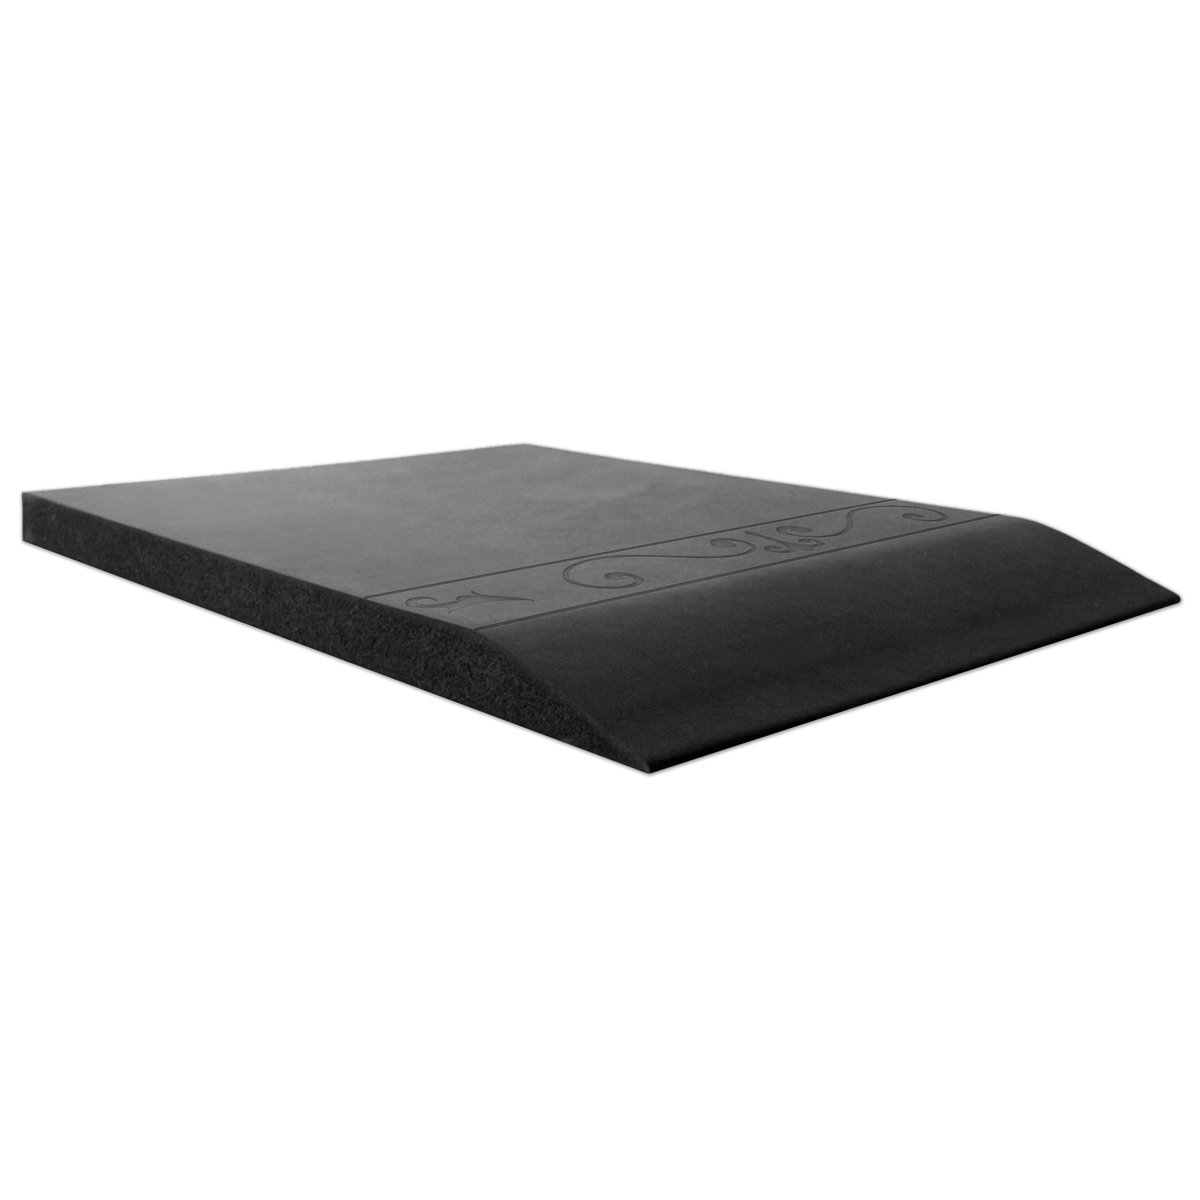 Smart Step Home Collection Fleur-de-Lys Design Mat, 72-Inch by 20-Inch, Black by Smart Step Therapeutic Flooring (Image #4)